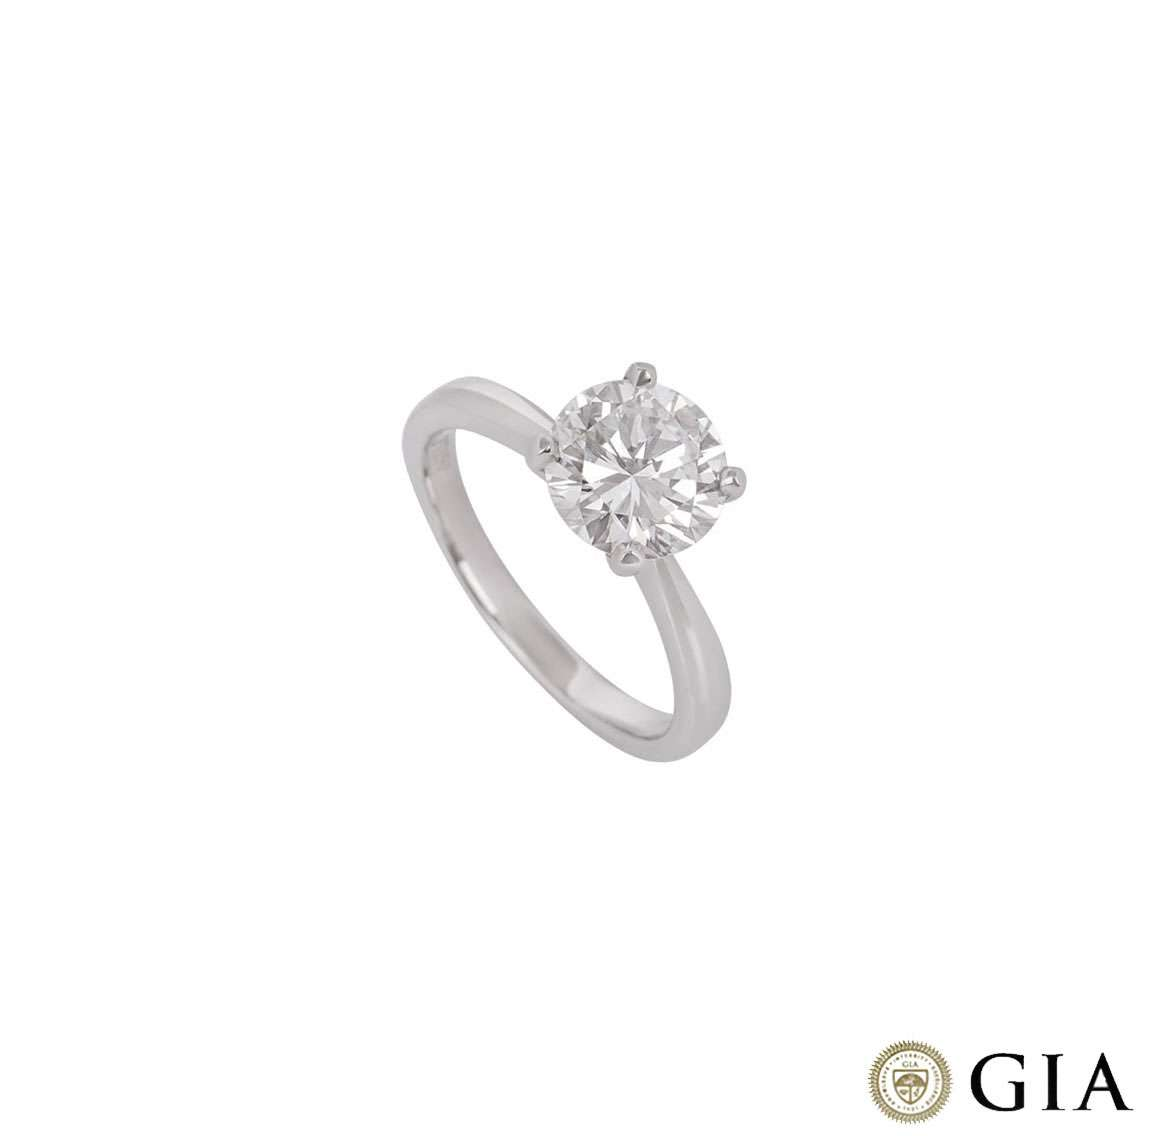 Round Brilliant Cut Diamond Ring In Platinum 2.00ct G/VS2